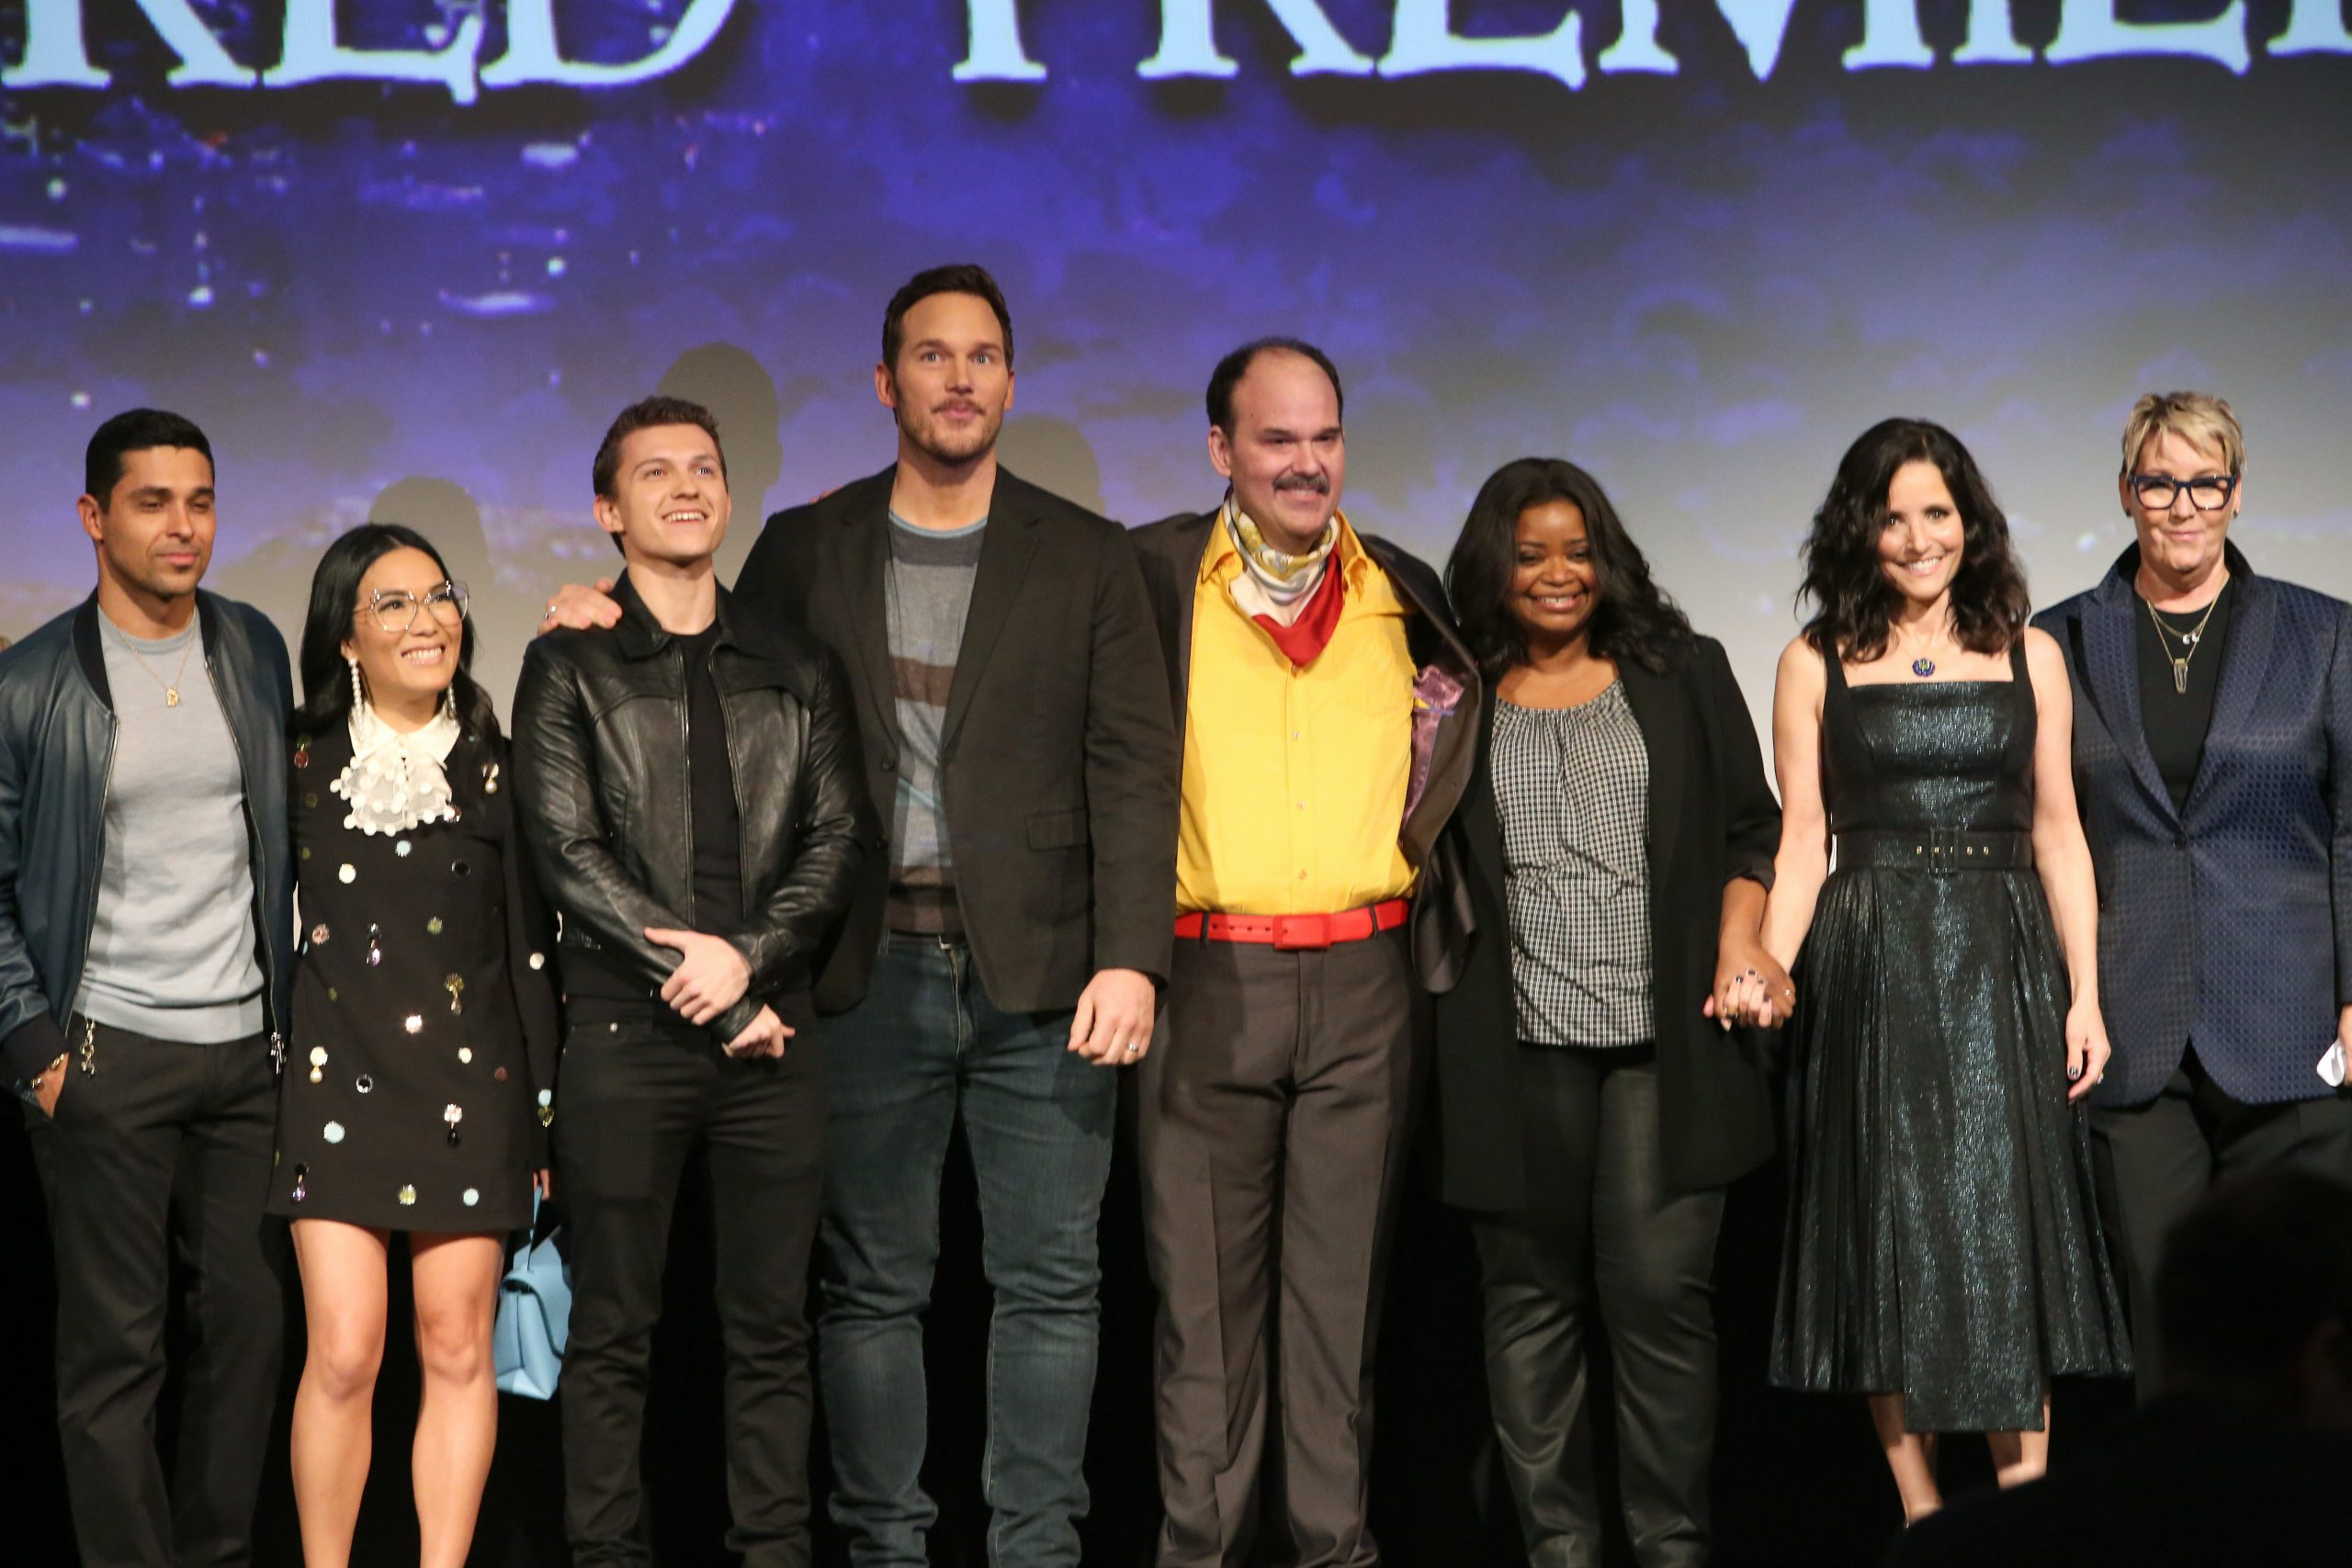 Pics: Disney + Pixar Onward World Premiere